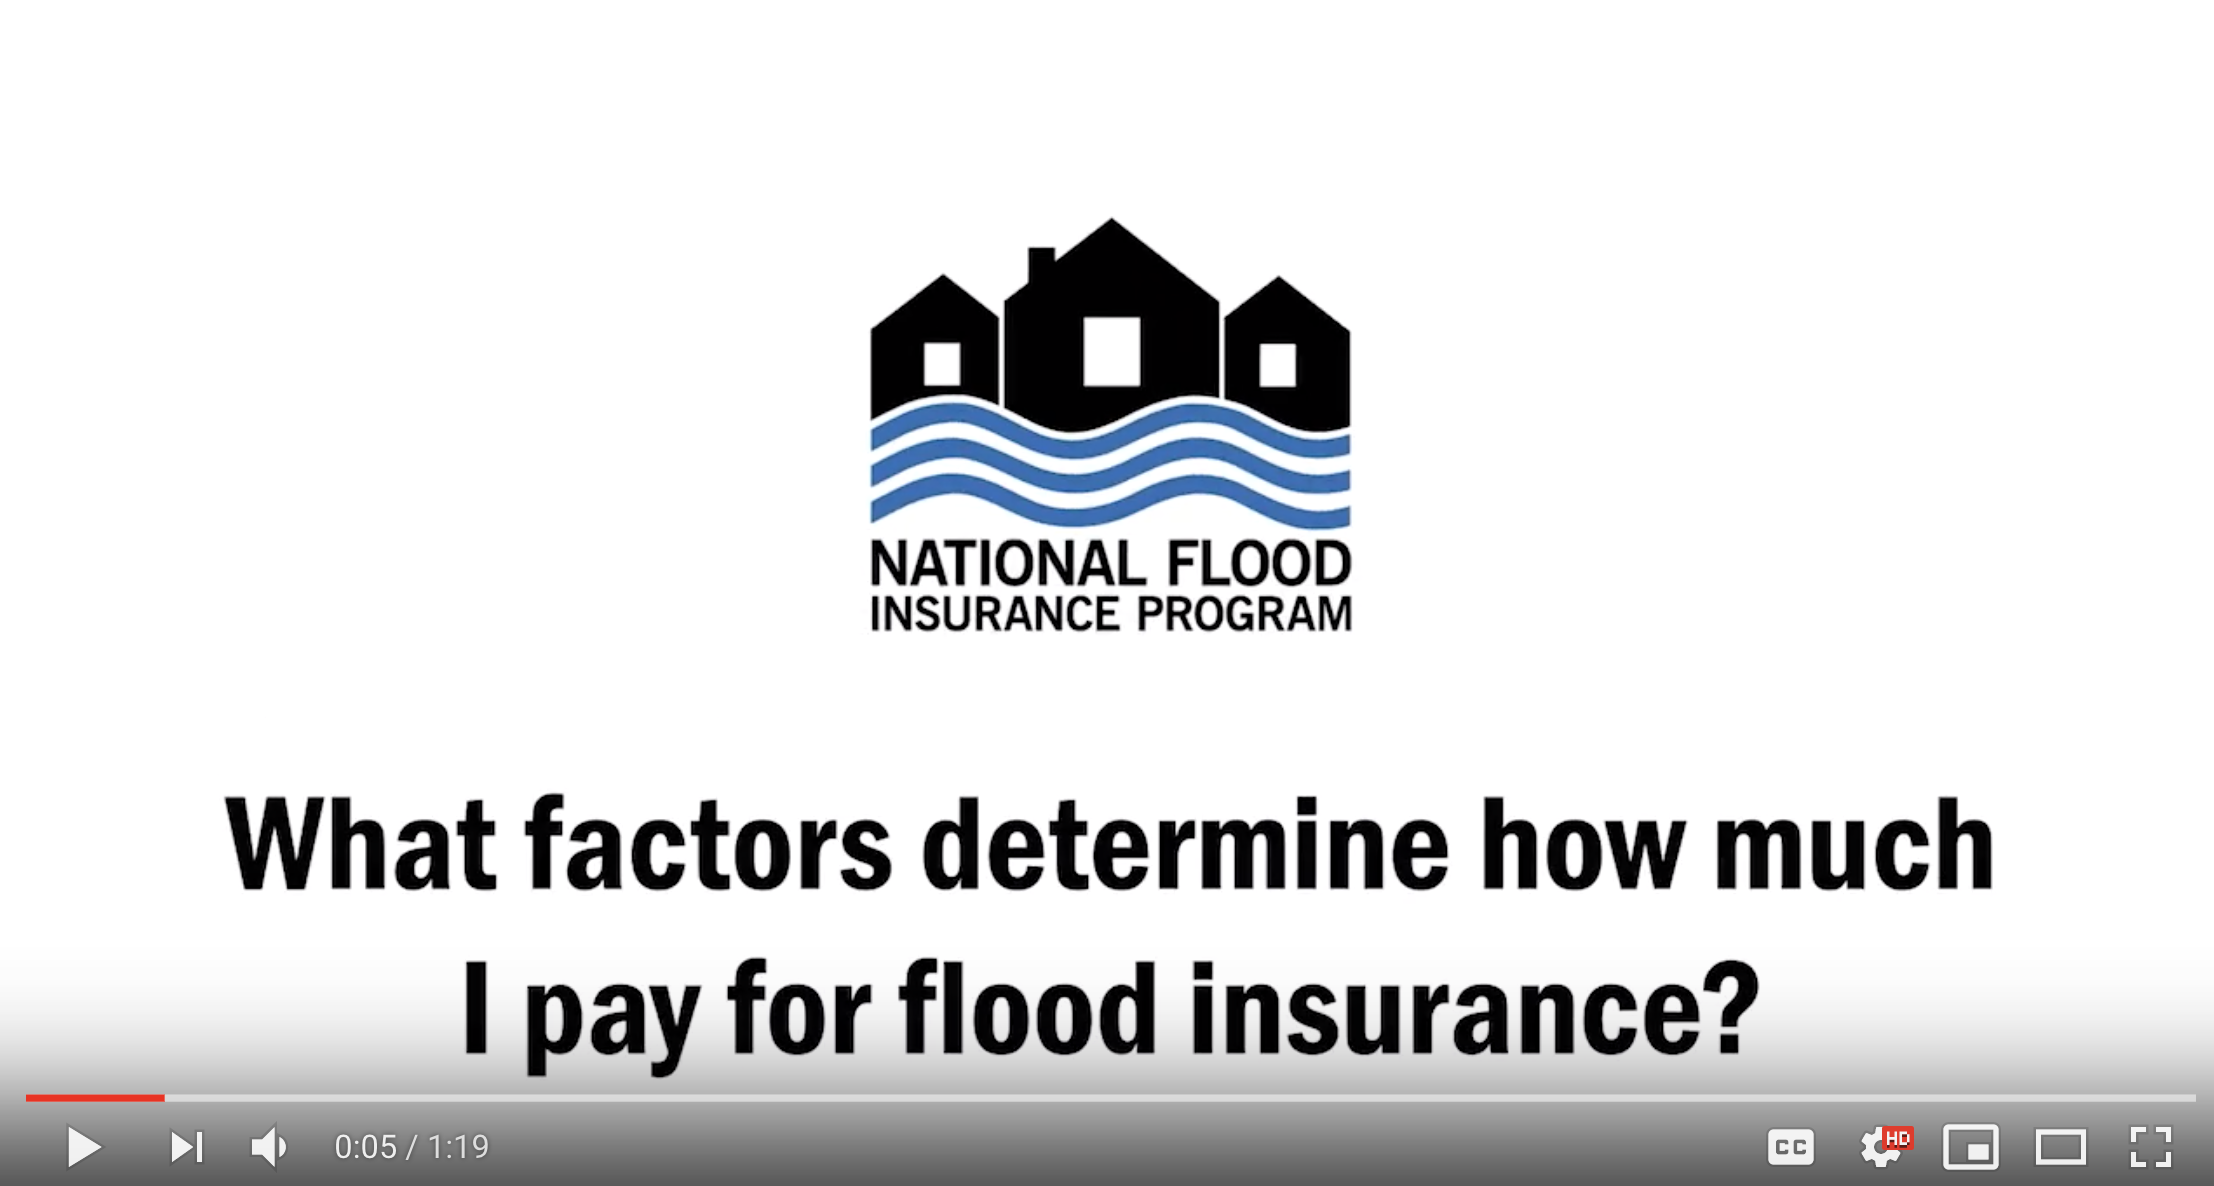 What factors determine how much you pay for flood insurance?